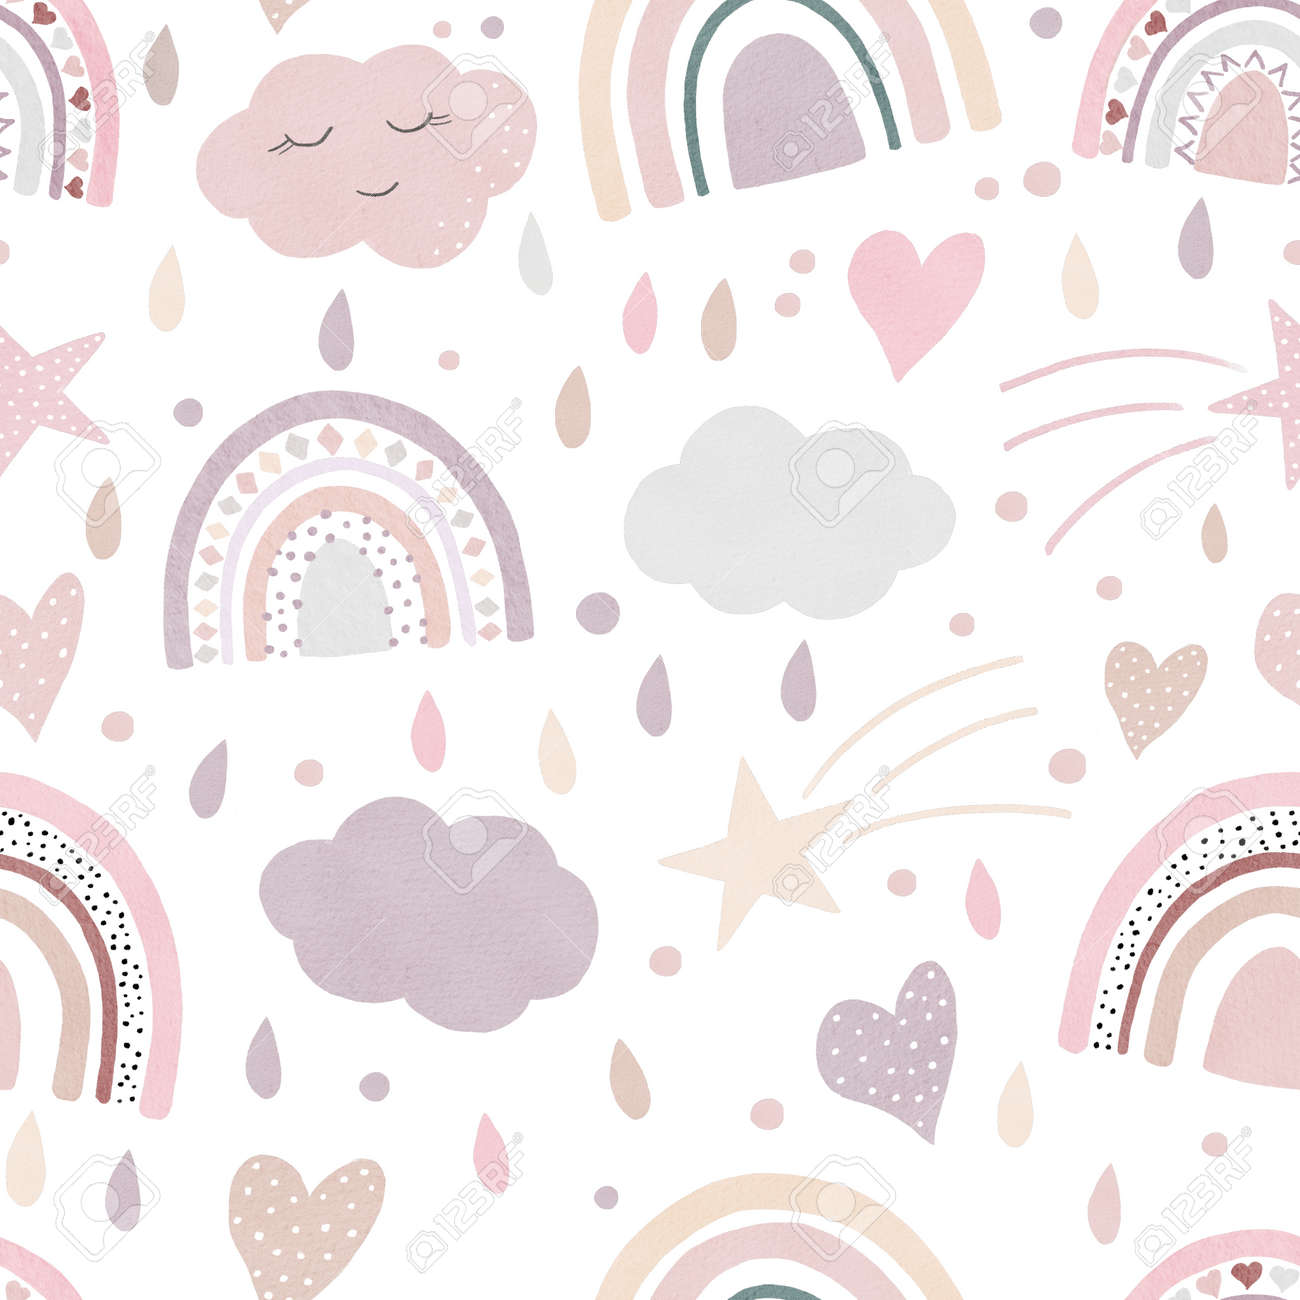 Watercolor hearts digital paper. Hand painted clipart. Seamless pattern isolated on white background. Perfect for love cards, decorations, scrapbooking, diy projects. - 166355053